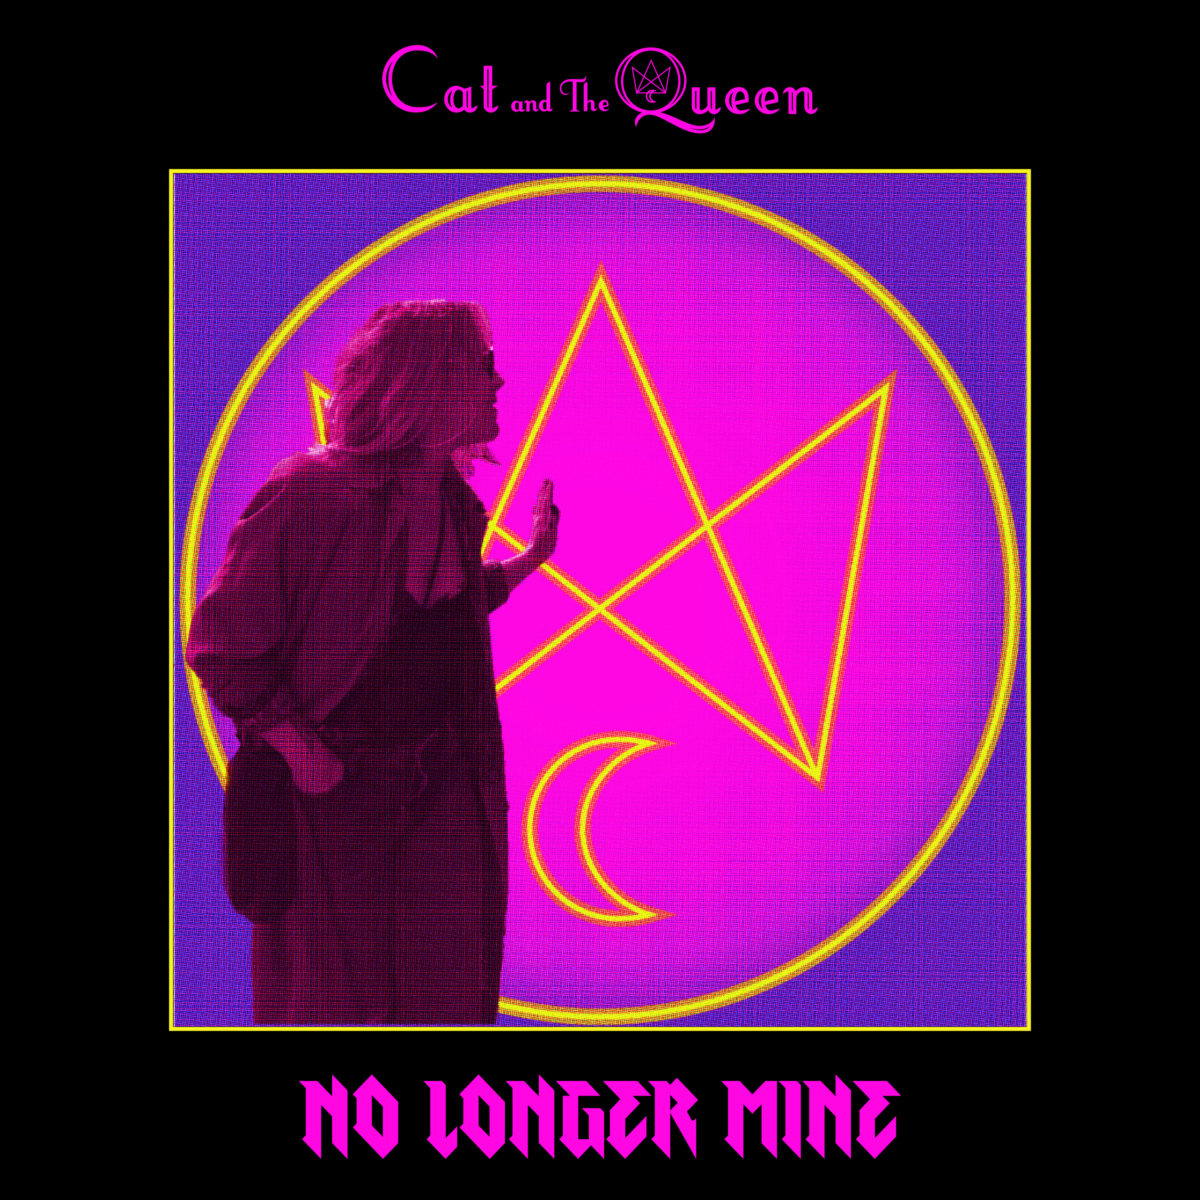 No Longer Mine - Single by Cat and the Queen